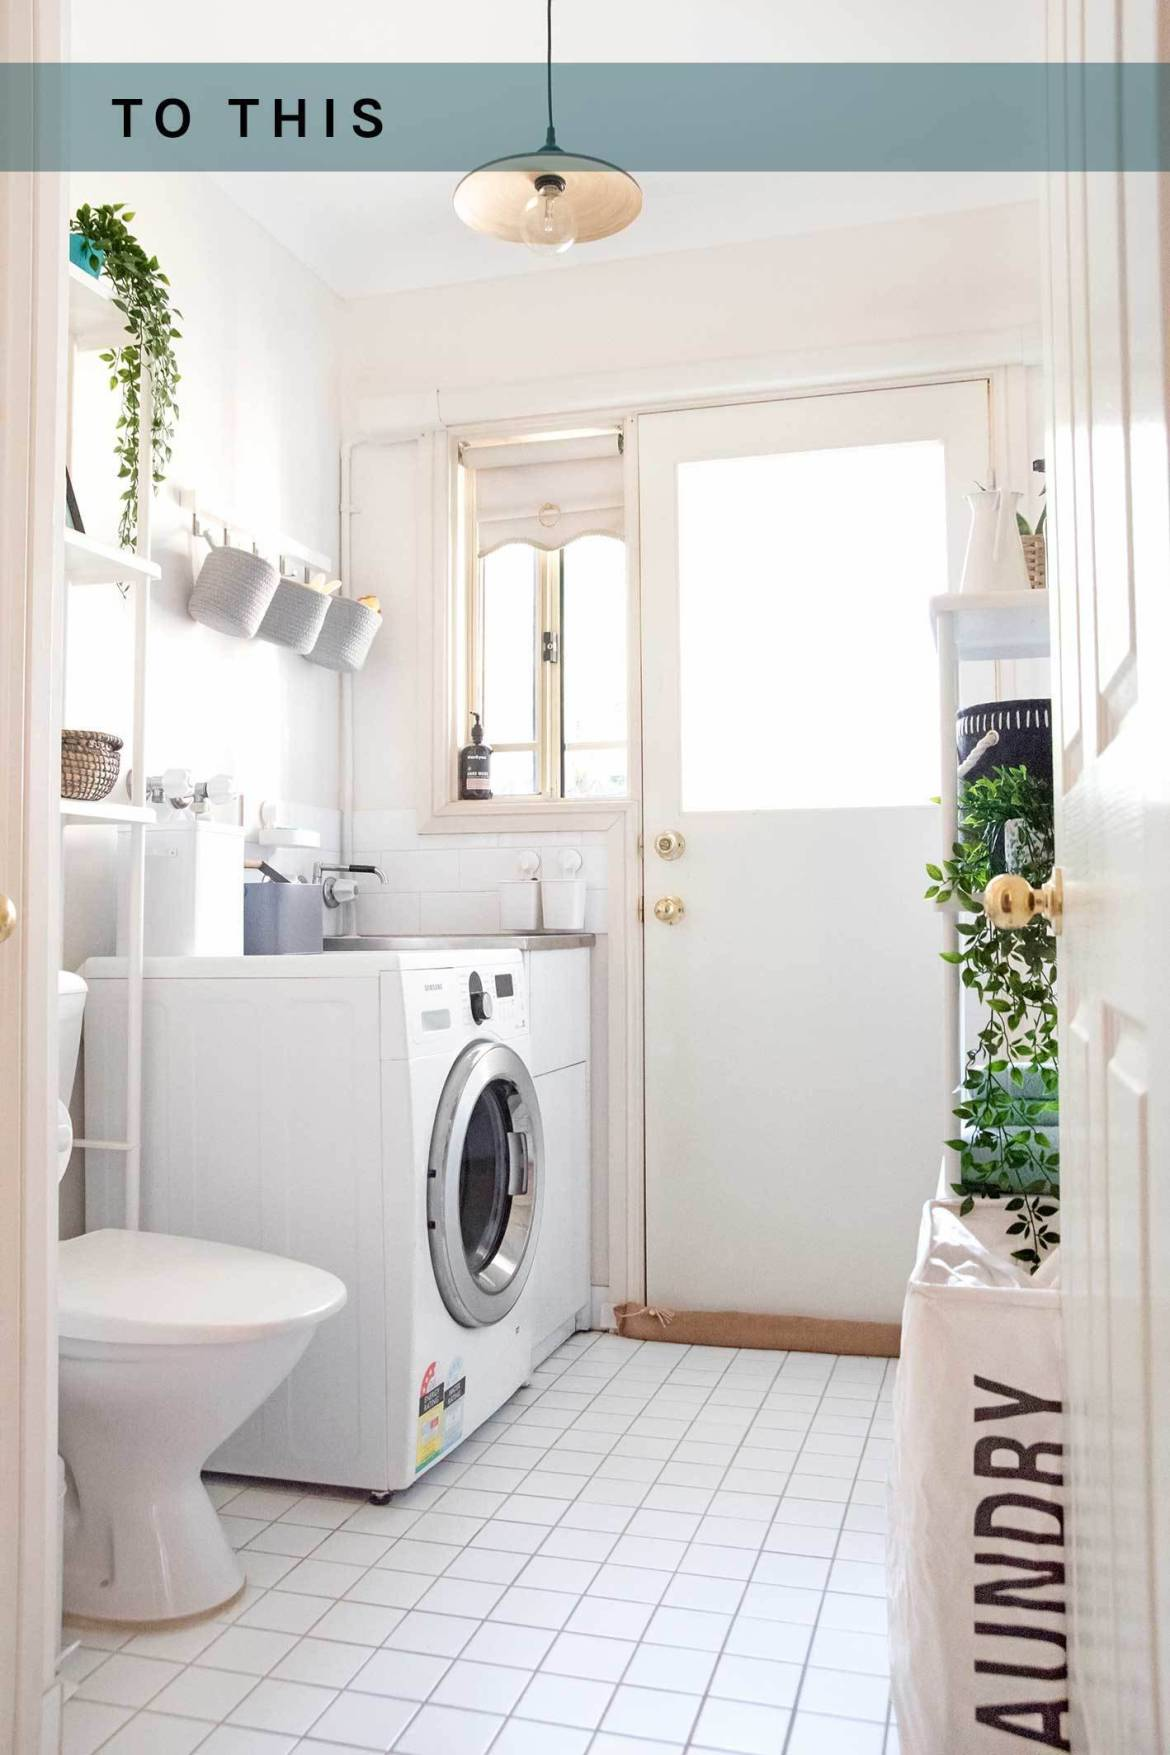 After photo of our newly organized laundry room